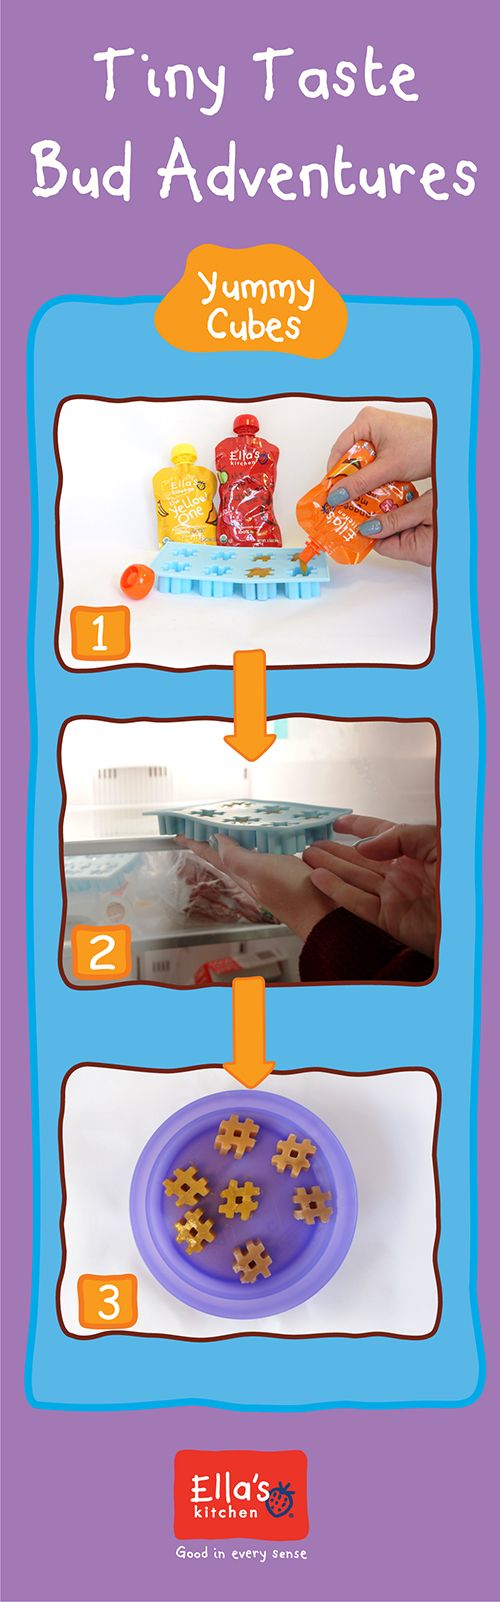 This Tiny Taste Bud Adventure is a super yummy activity for you and your little one to enjoy together! Try with Apples + Strawberries, The Yellow One, and Mangos Mangos Mangos!  Step 1) Gather rubber ice cube molds and Ella's Kitchen purees Step 2) Fill ice cube molds with Ella's Kitchen purees and freeze Step 3) Pop out and use as smoothie mixers or teething treats for tiny teeth!  For the extra little, put the treats in a mesh bag before giving it to them to suck on.: Little One